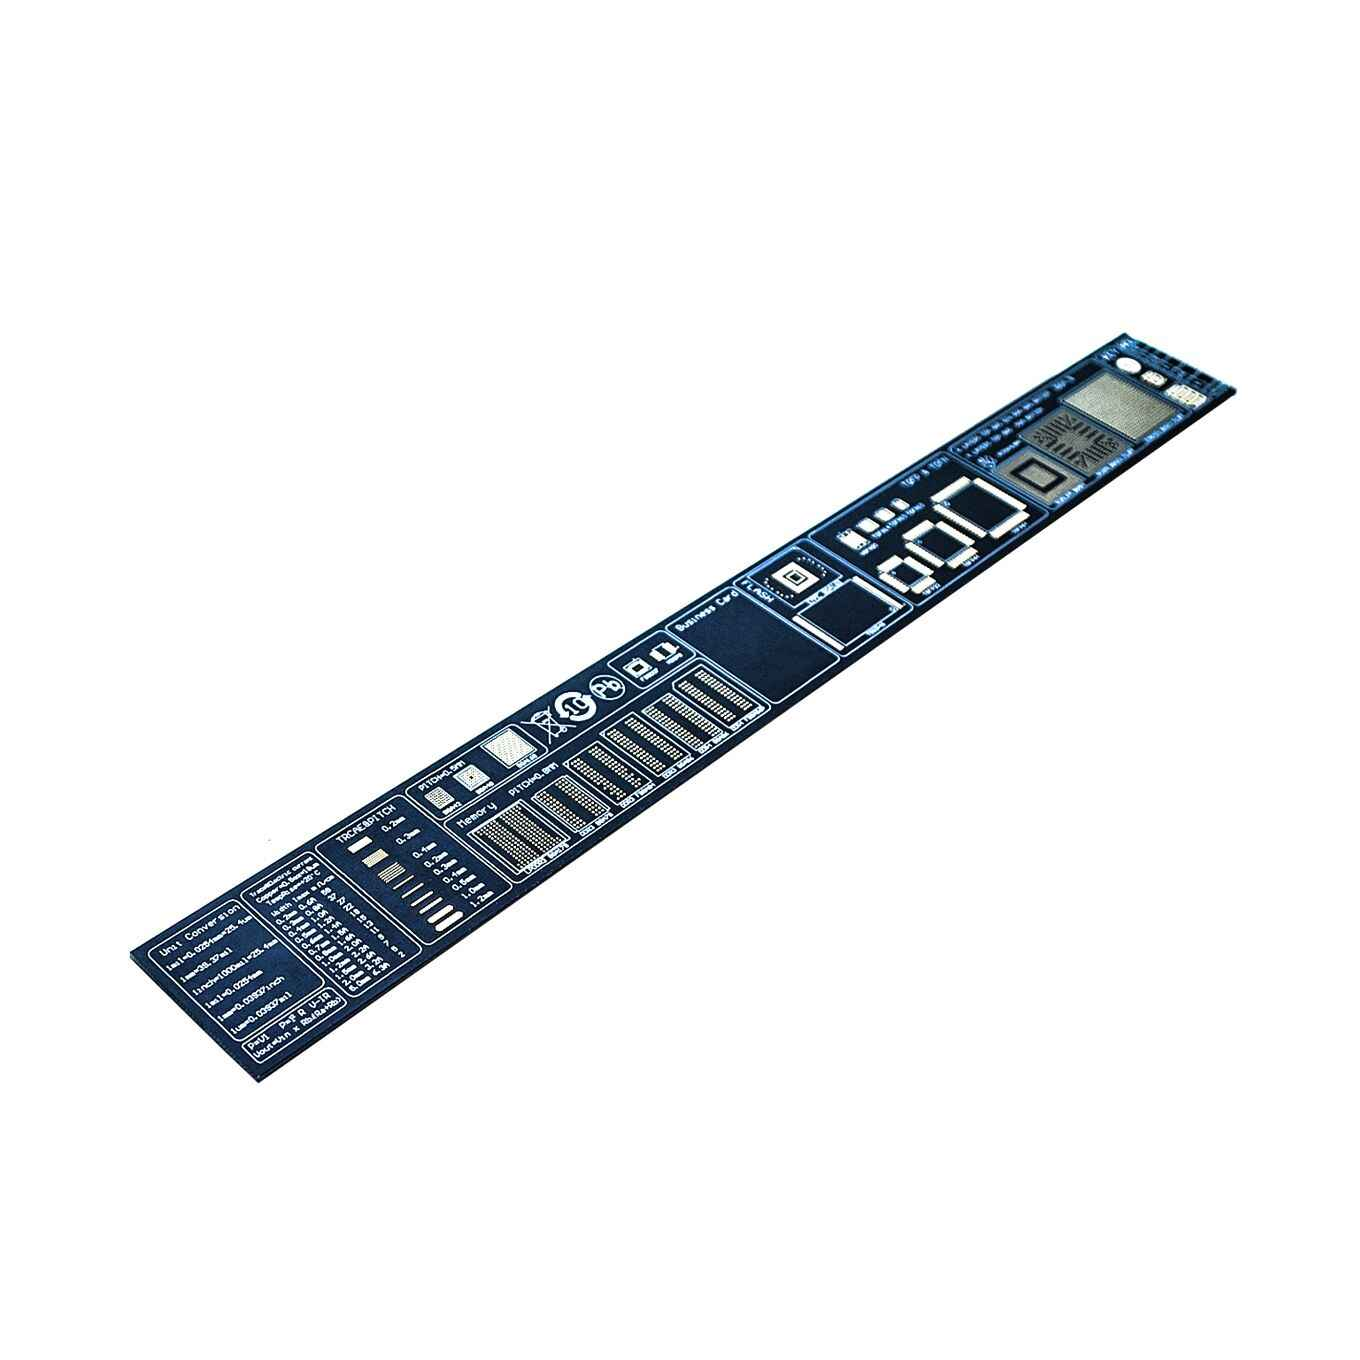 30cm Multifunctional PCB Ruler EDA Measuring Tool Chip IC Electronic Engineers PCB Protractor For Geeks Makers Reference Ruler